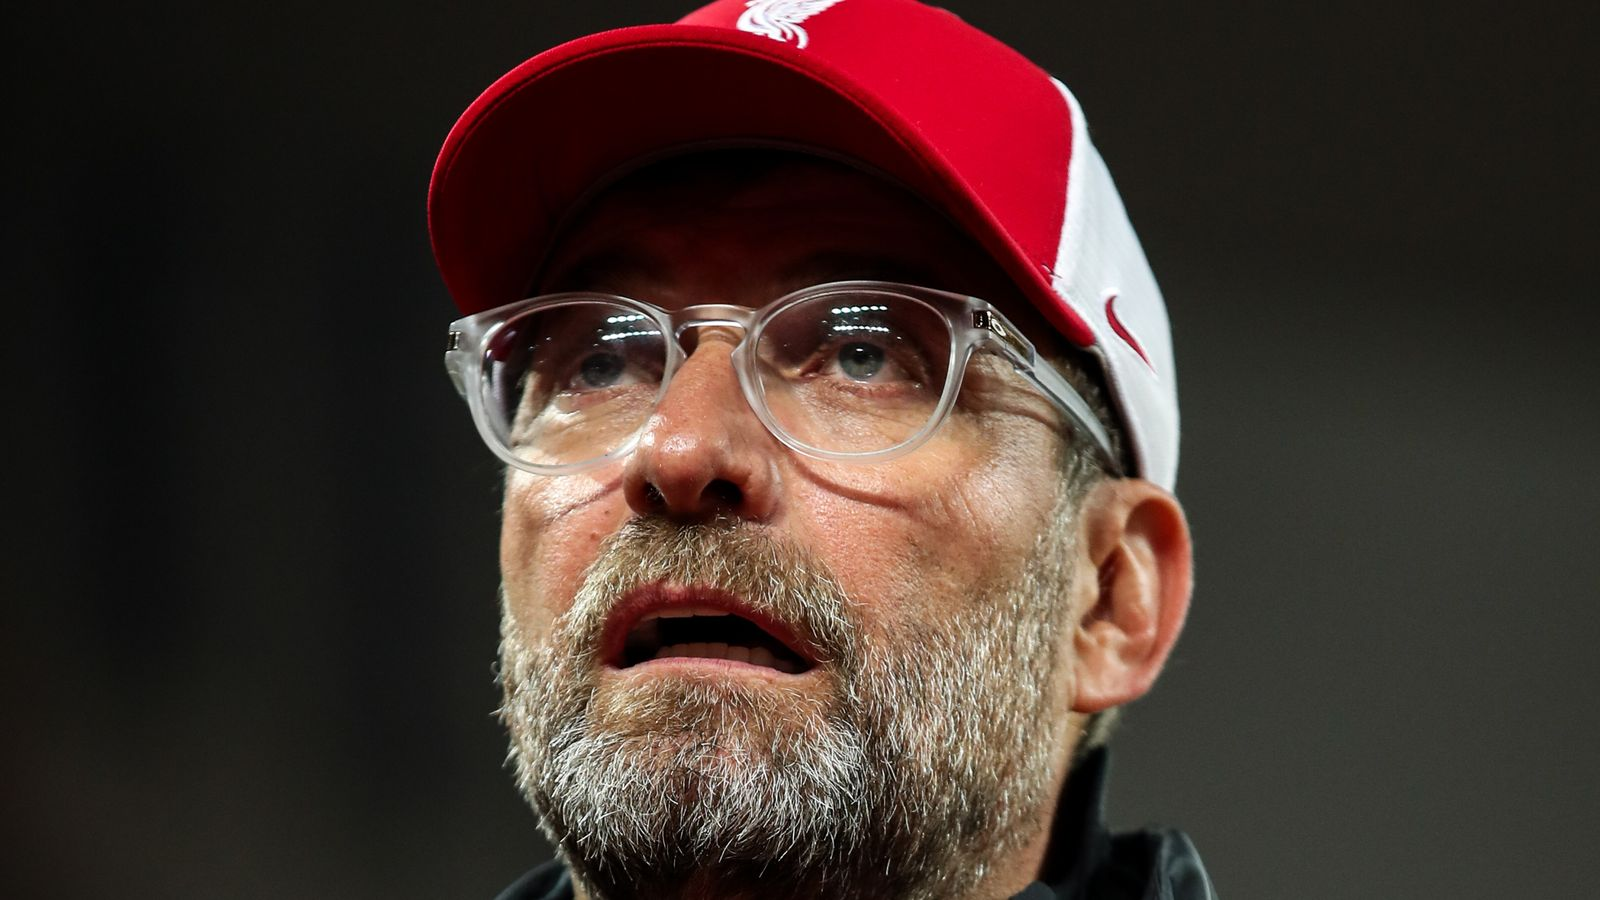 Gary Neville: Jurgen Klopp's argument on fatigue and scheduling is flawed, he's just looking for a psychological edge like Sir Alex Ferguson - Sky Spo